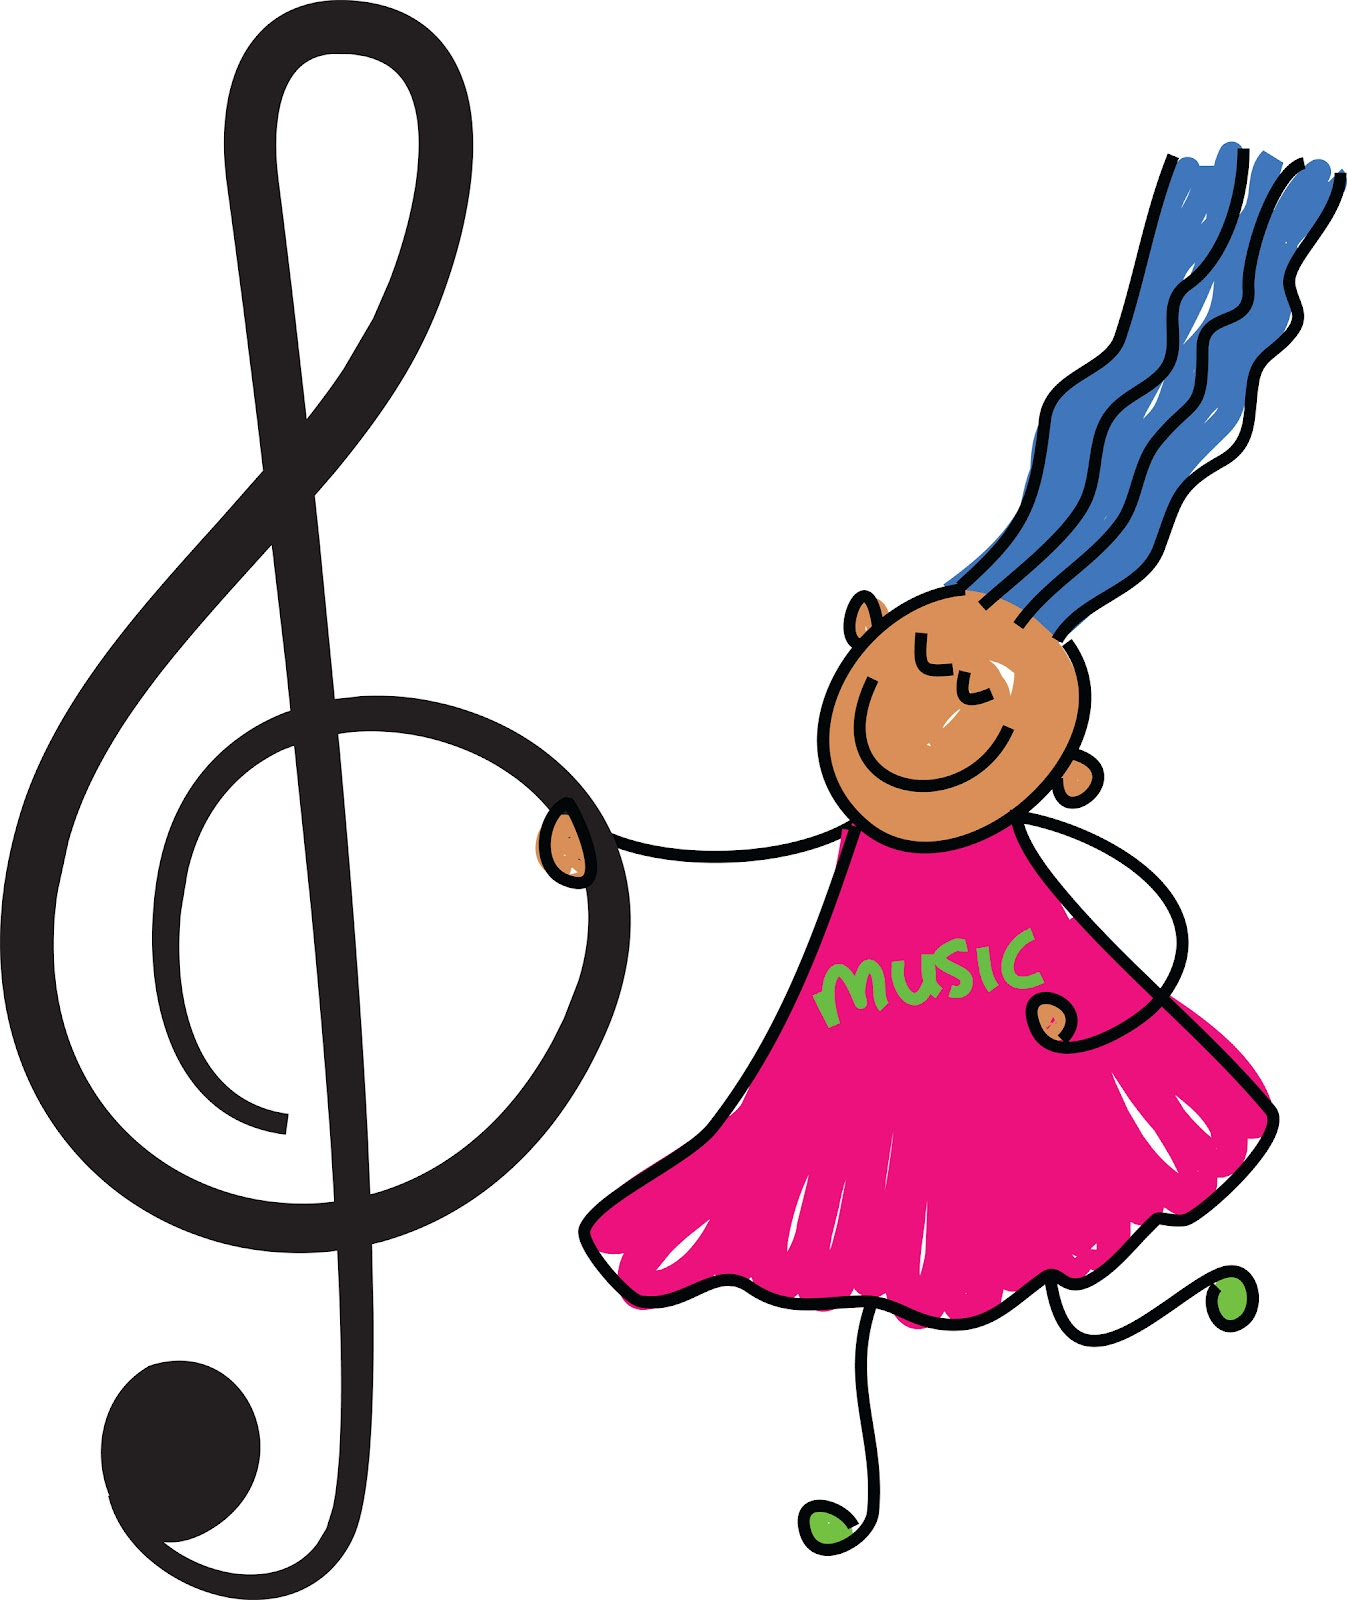 free animated music clip art - photo #50